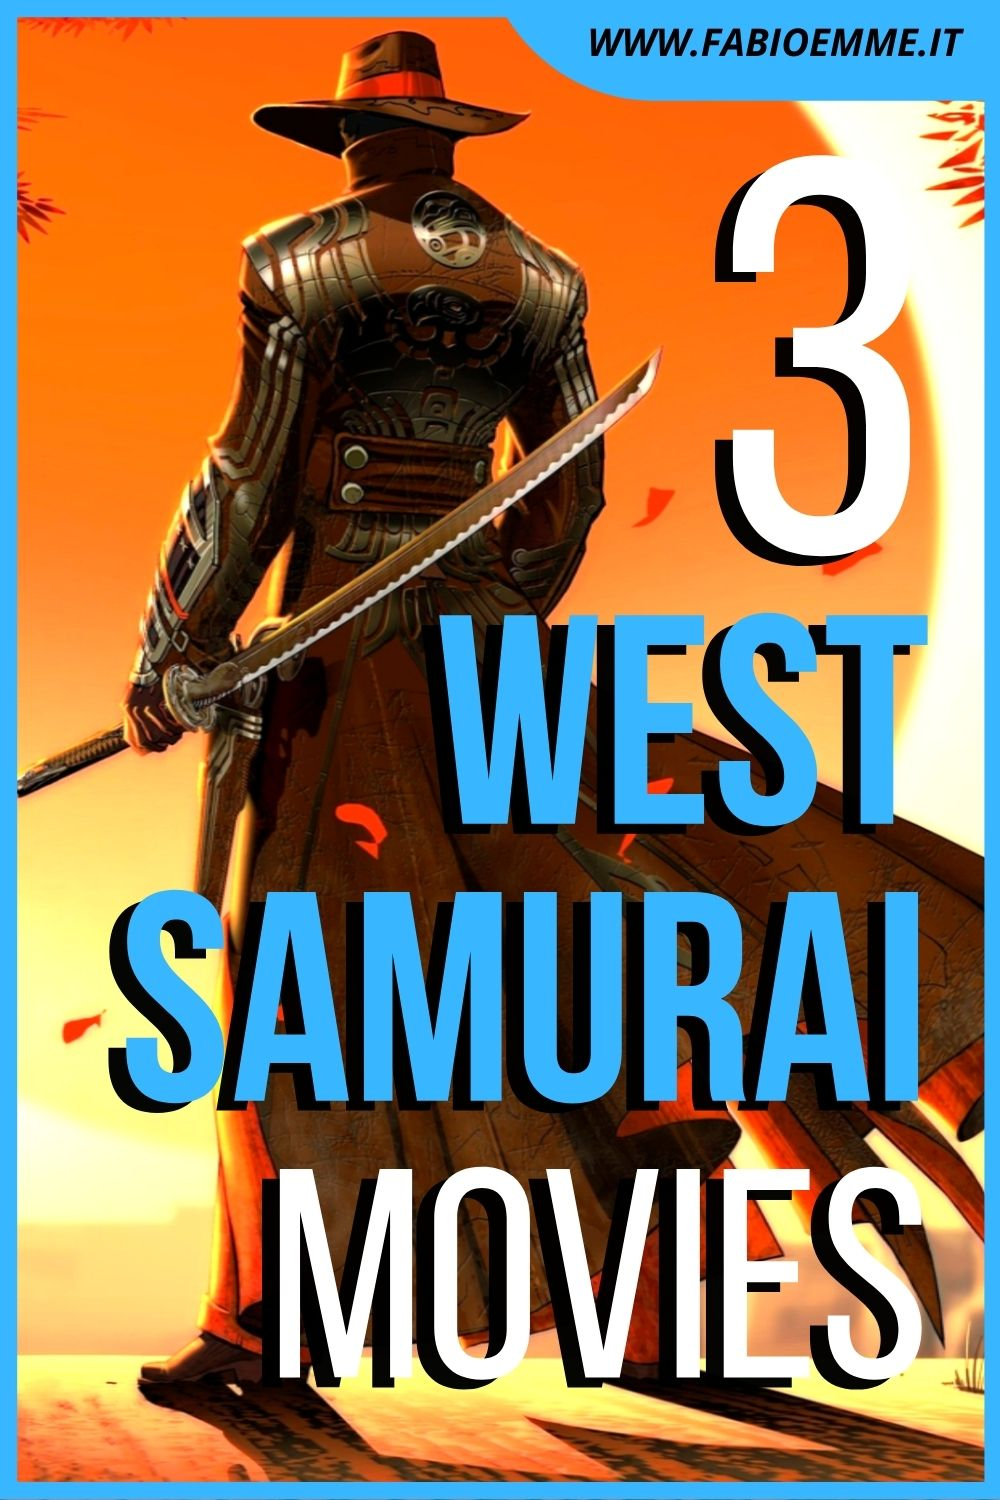 3 West Samurai Movies